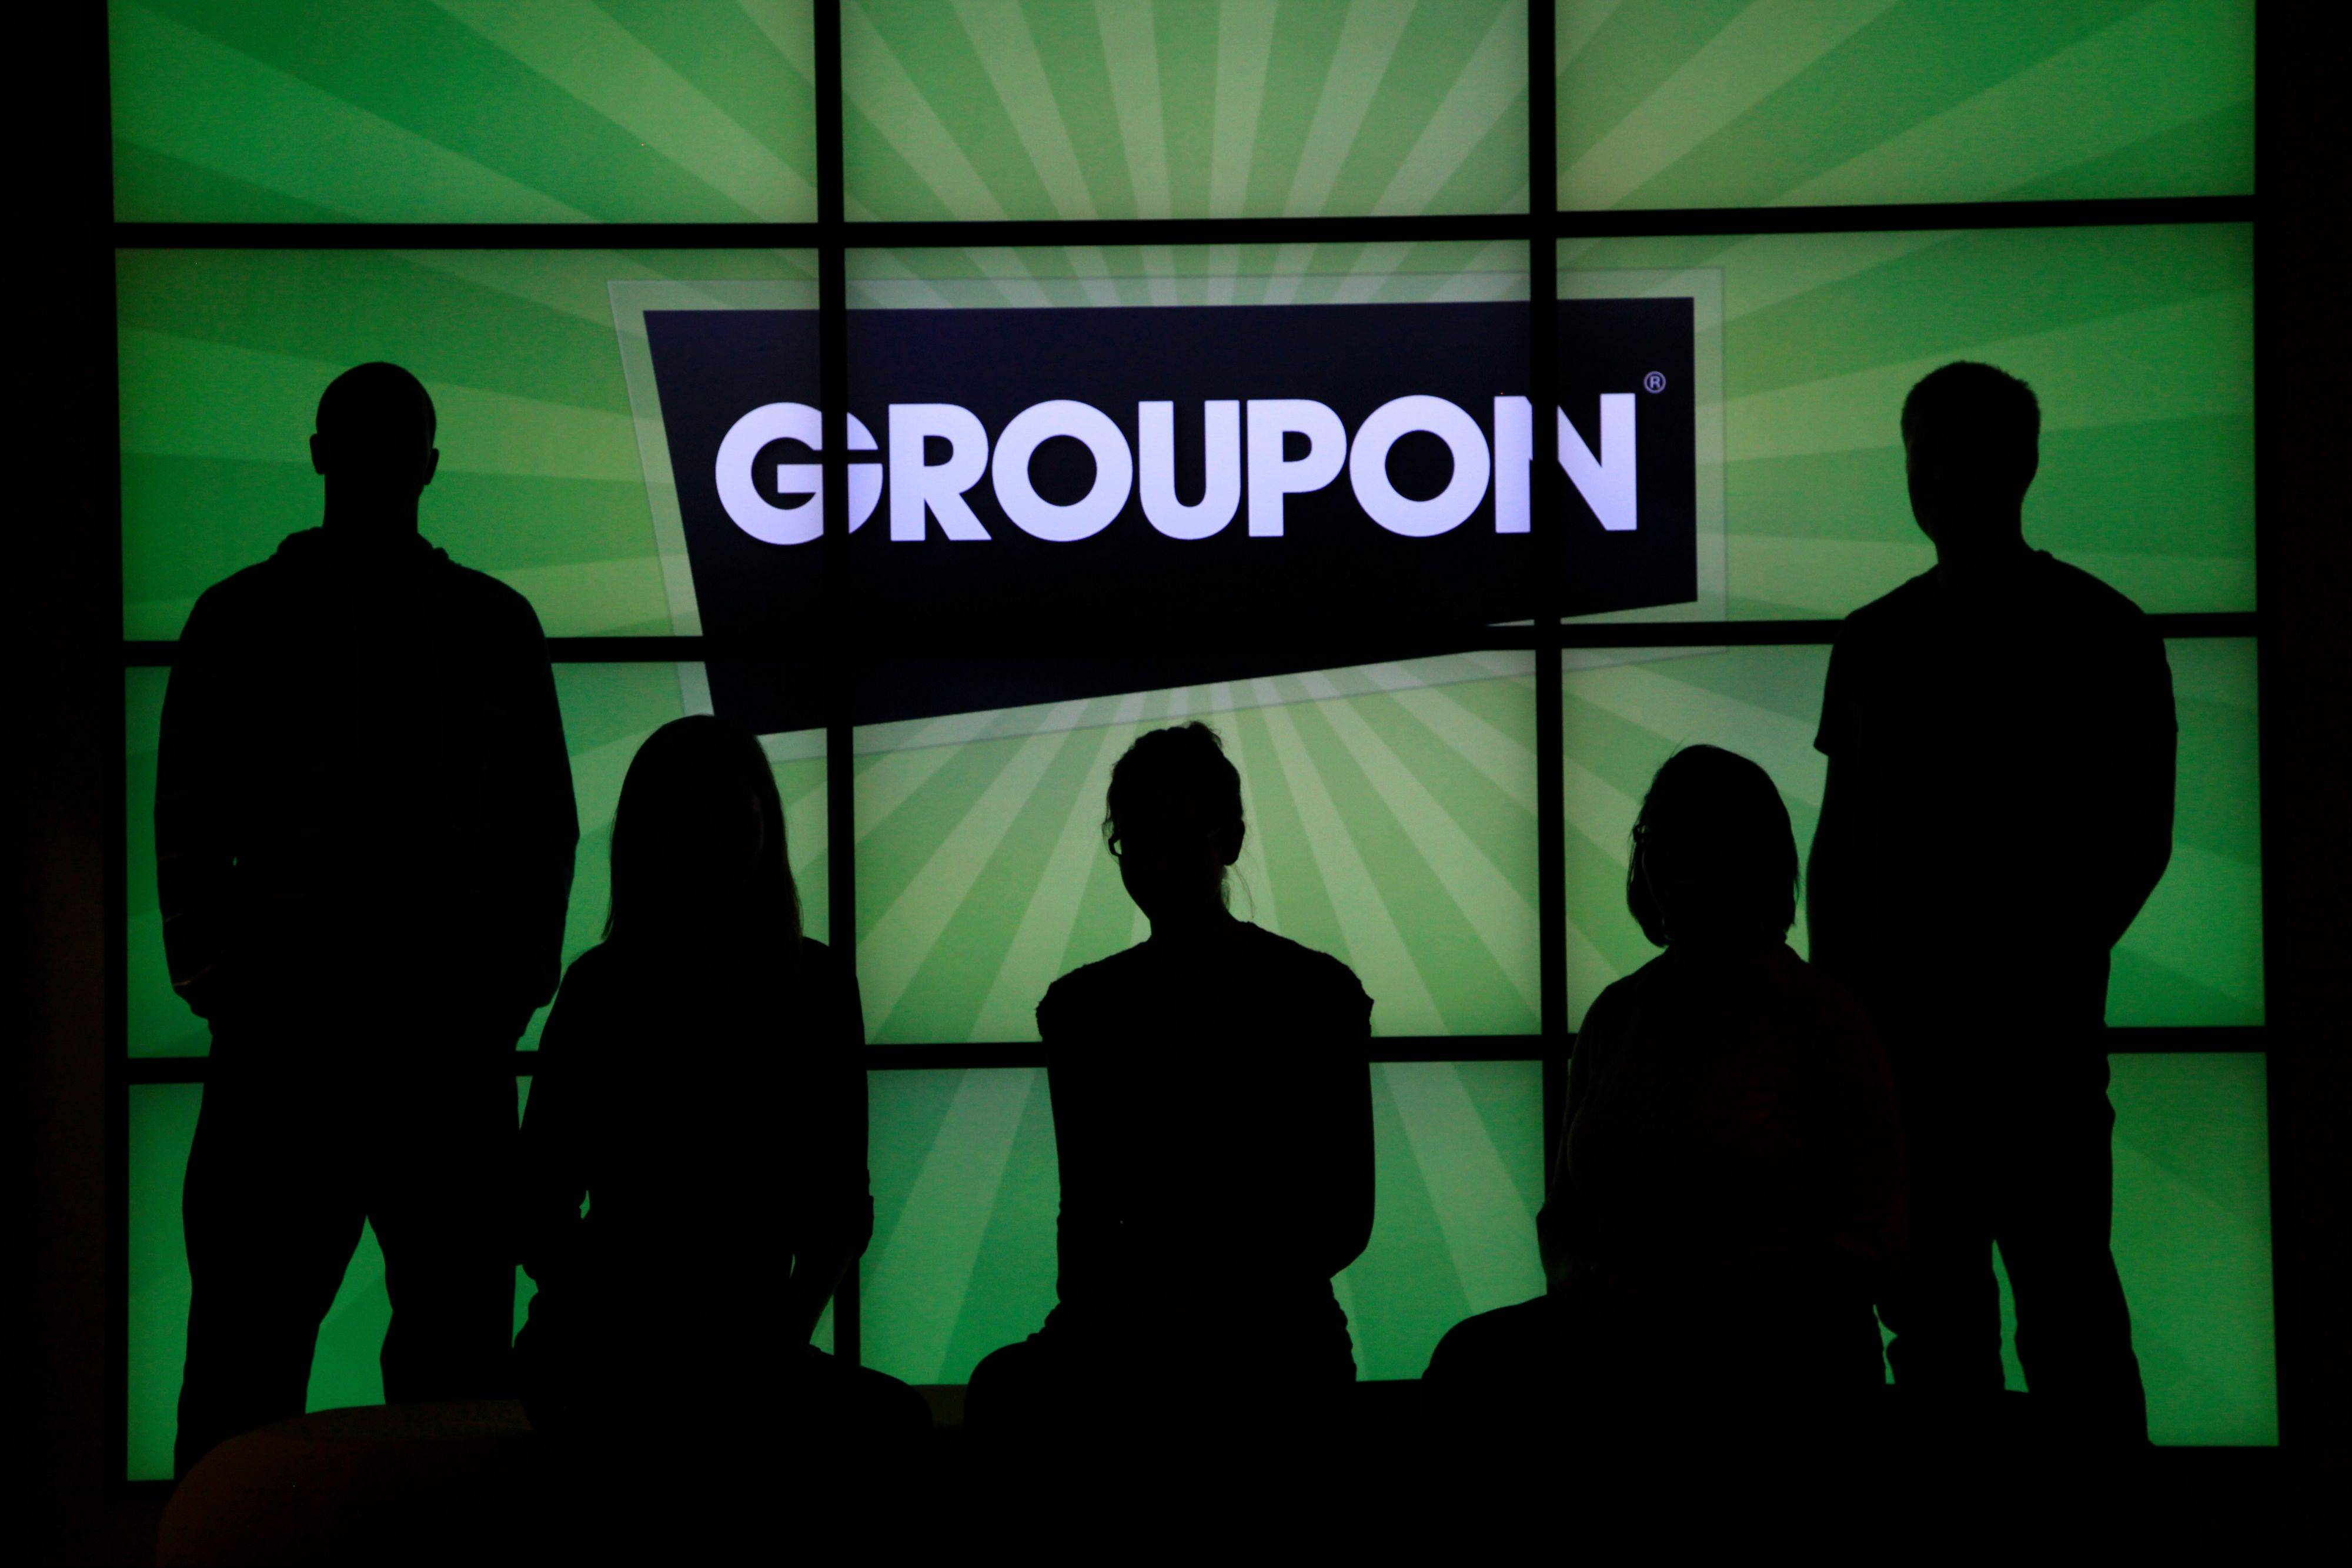 Associated Press/2011Employees at Groupon pose in silhouette by the company logo in the lobby of the online coupon company's Chicago offices.